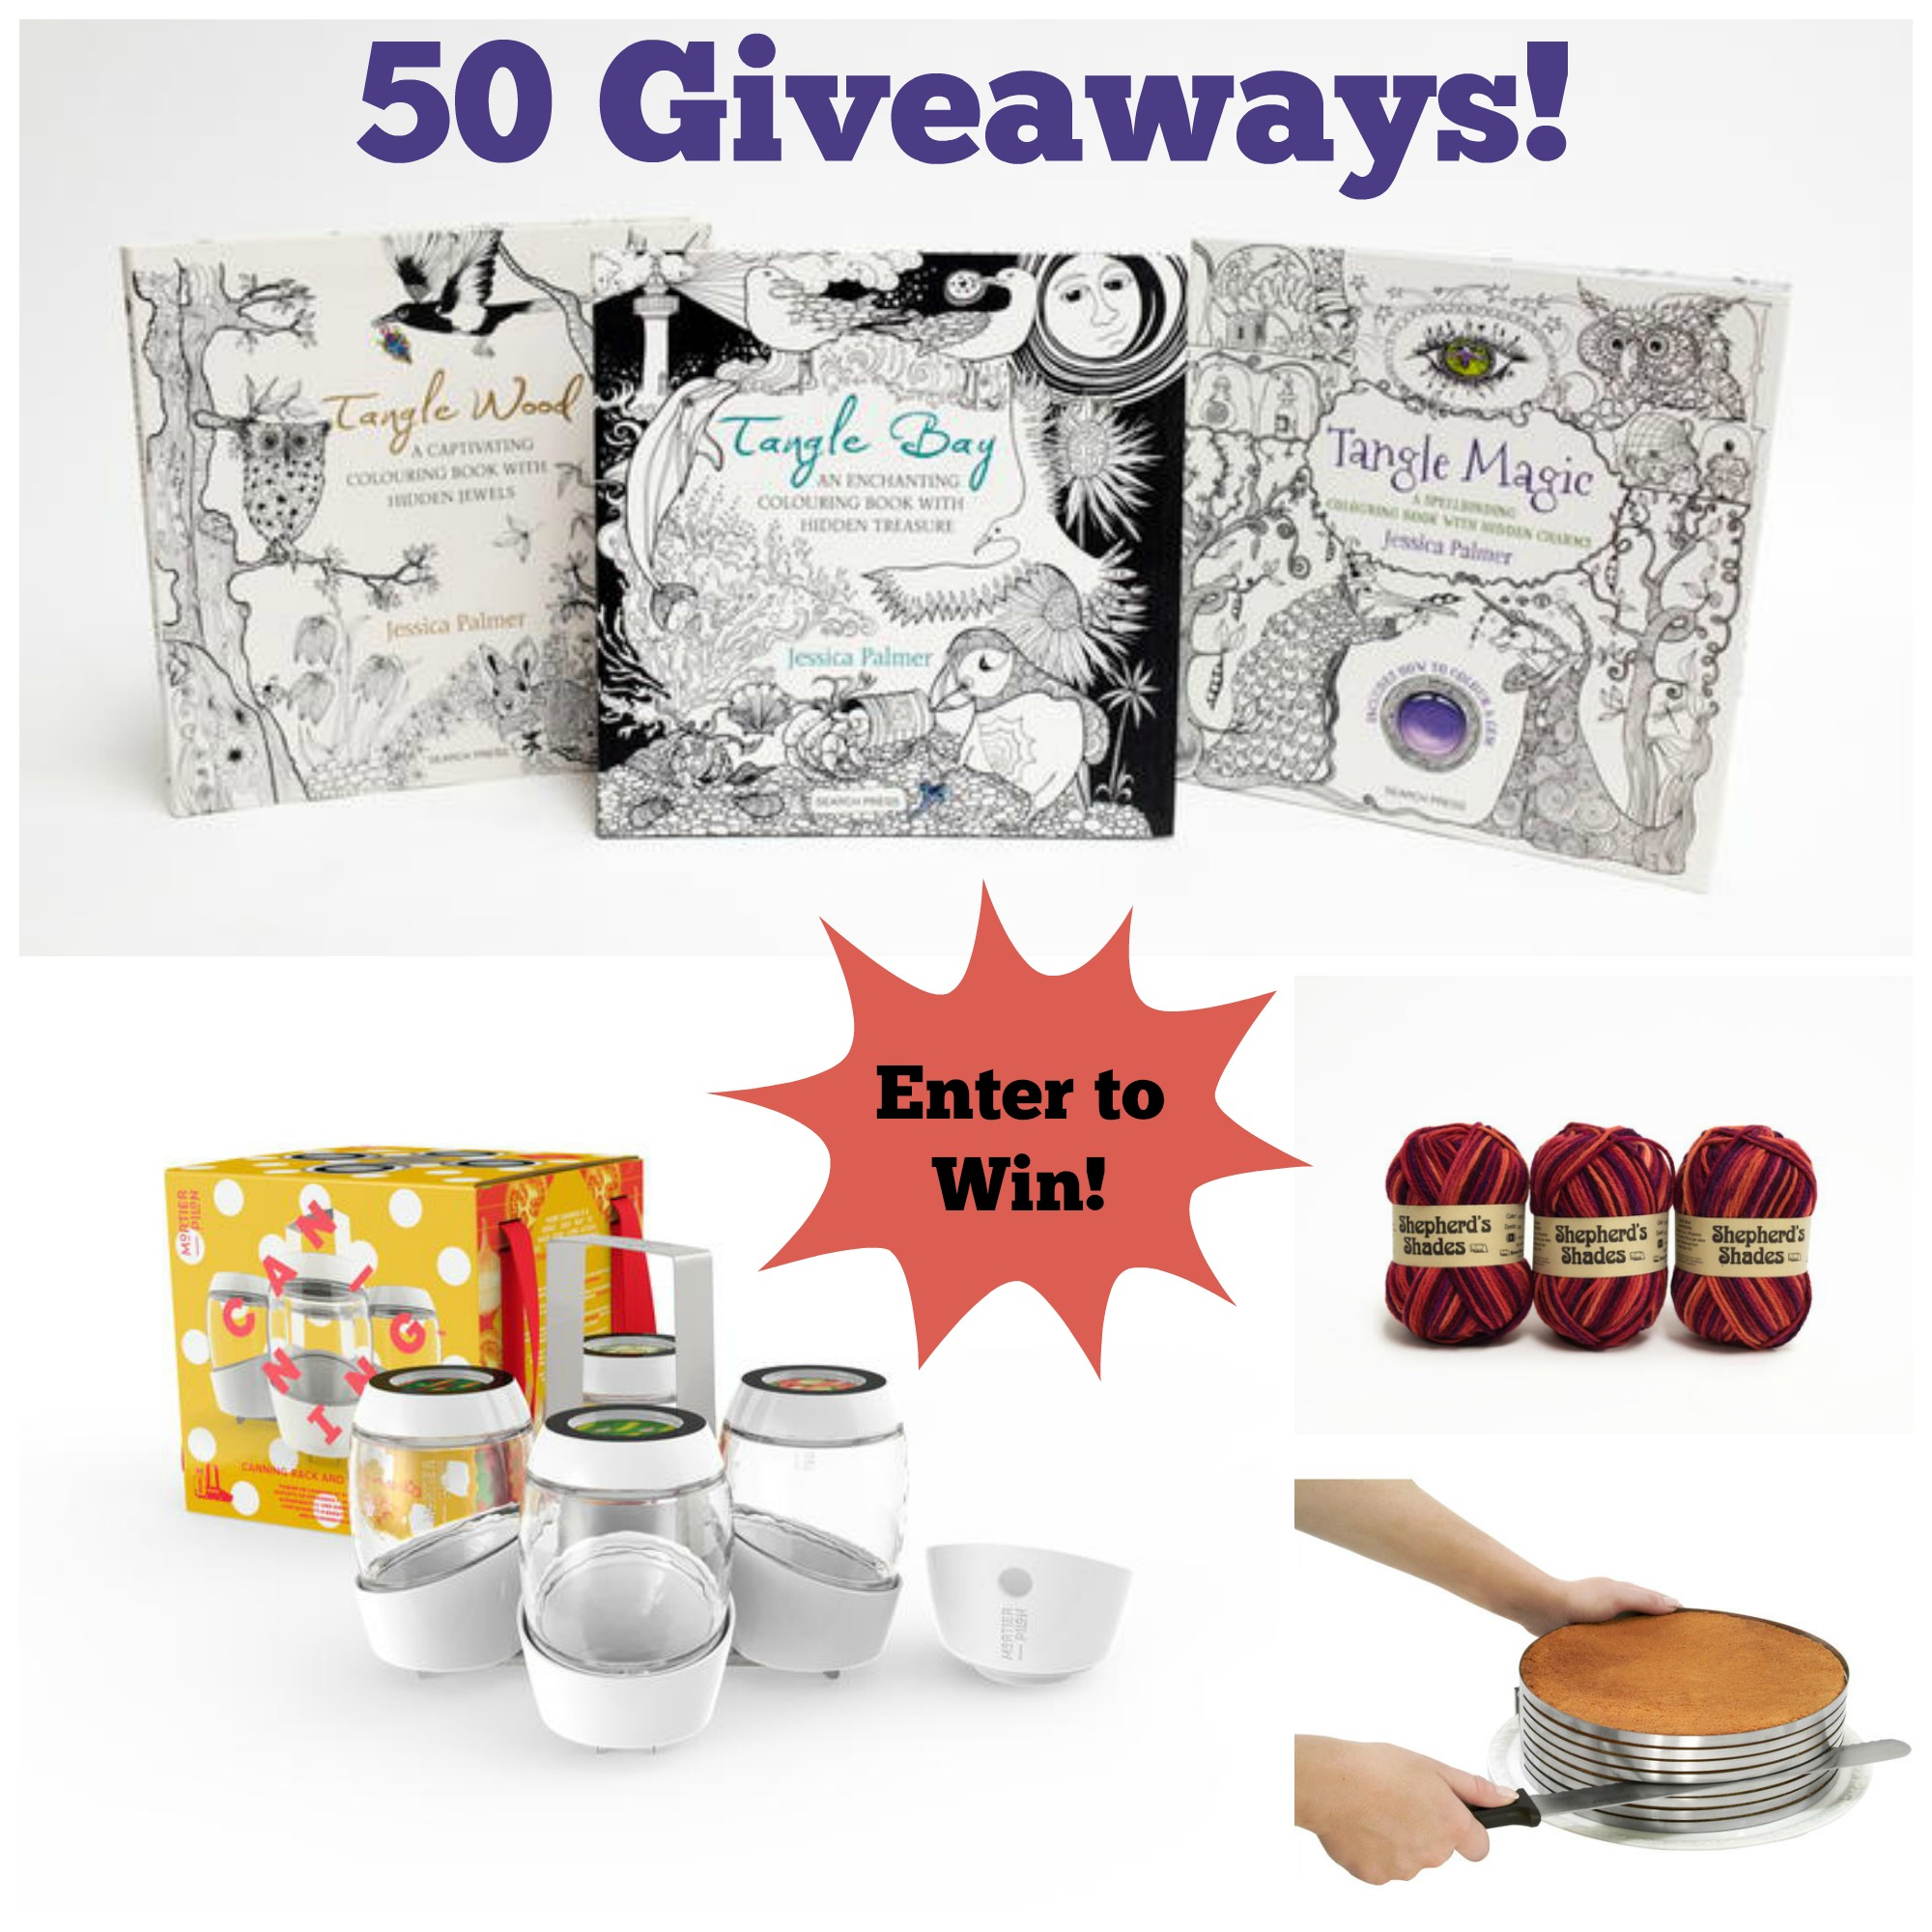 Giveaways! Giveaways! Giveaways! - The Giveaway Gazette